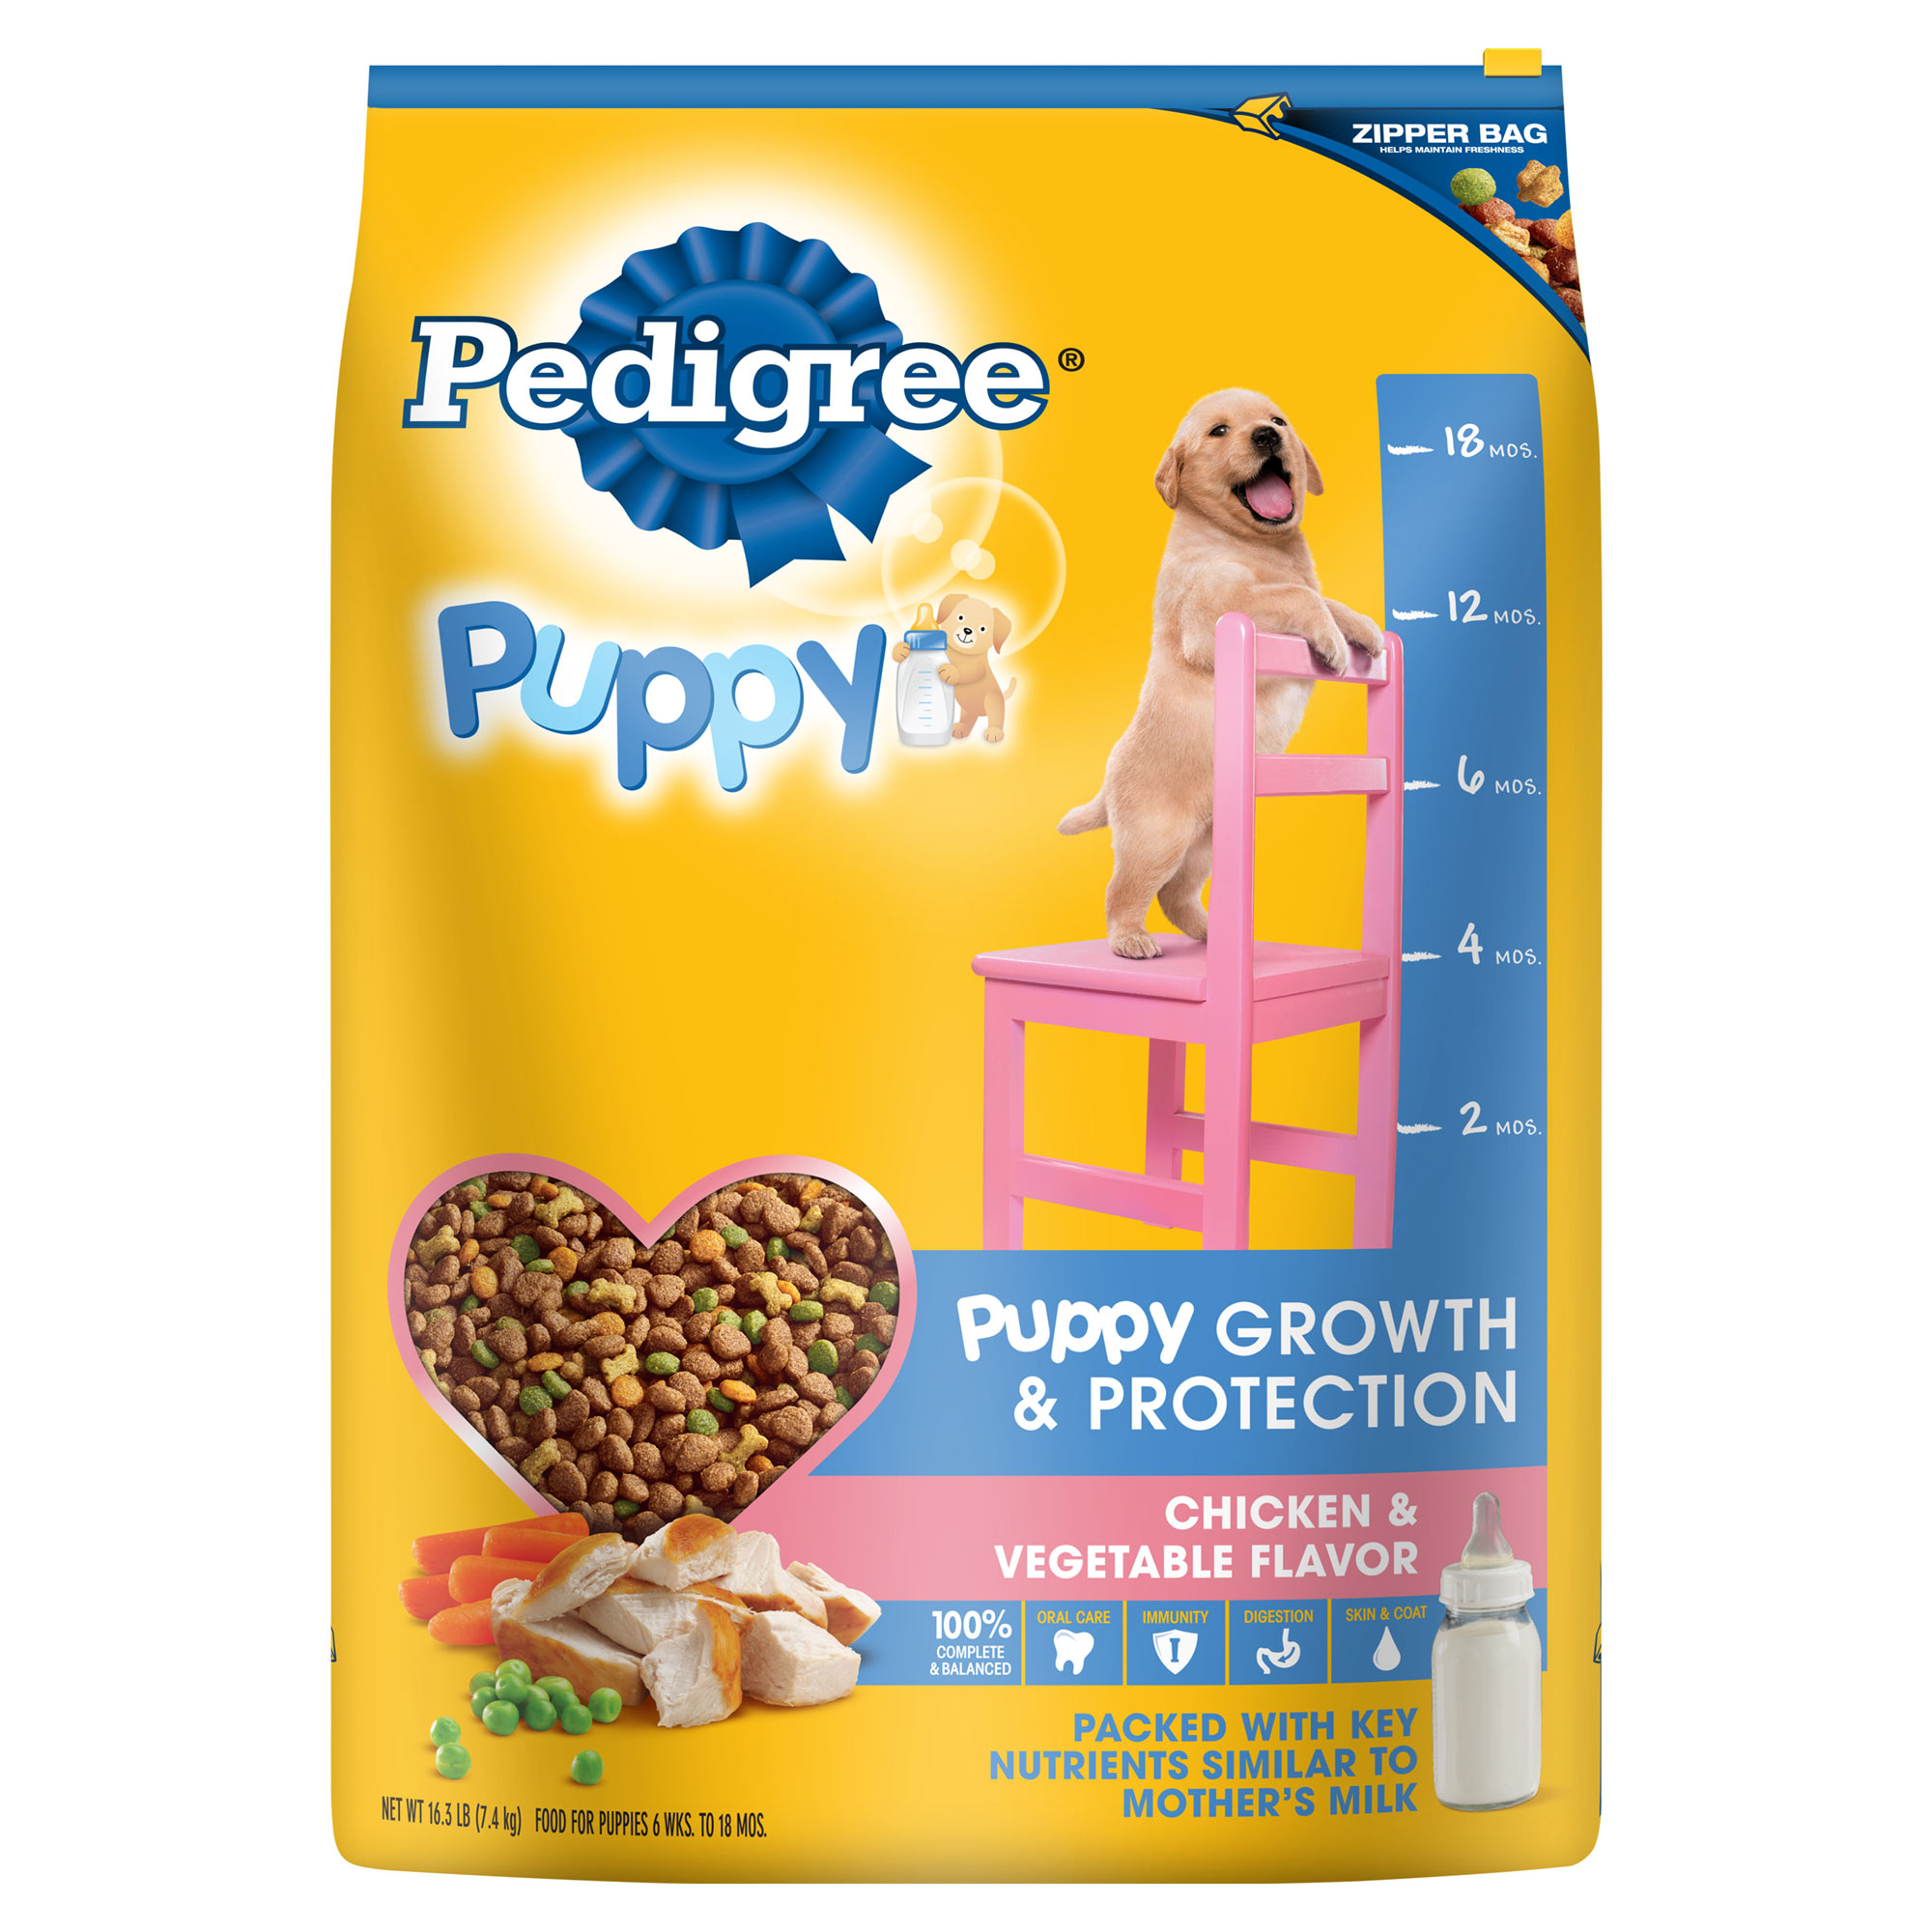 PEDIGREE Puppy Growth and Protection Chicken & Vegetable Flavor Dry Dog Food 16.3 Pounds